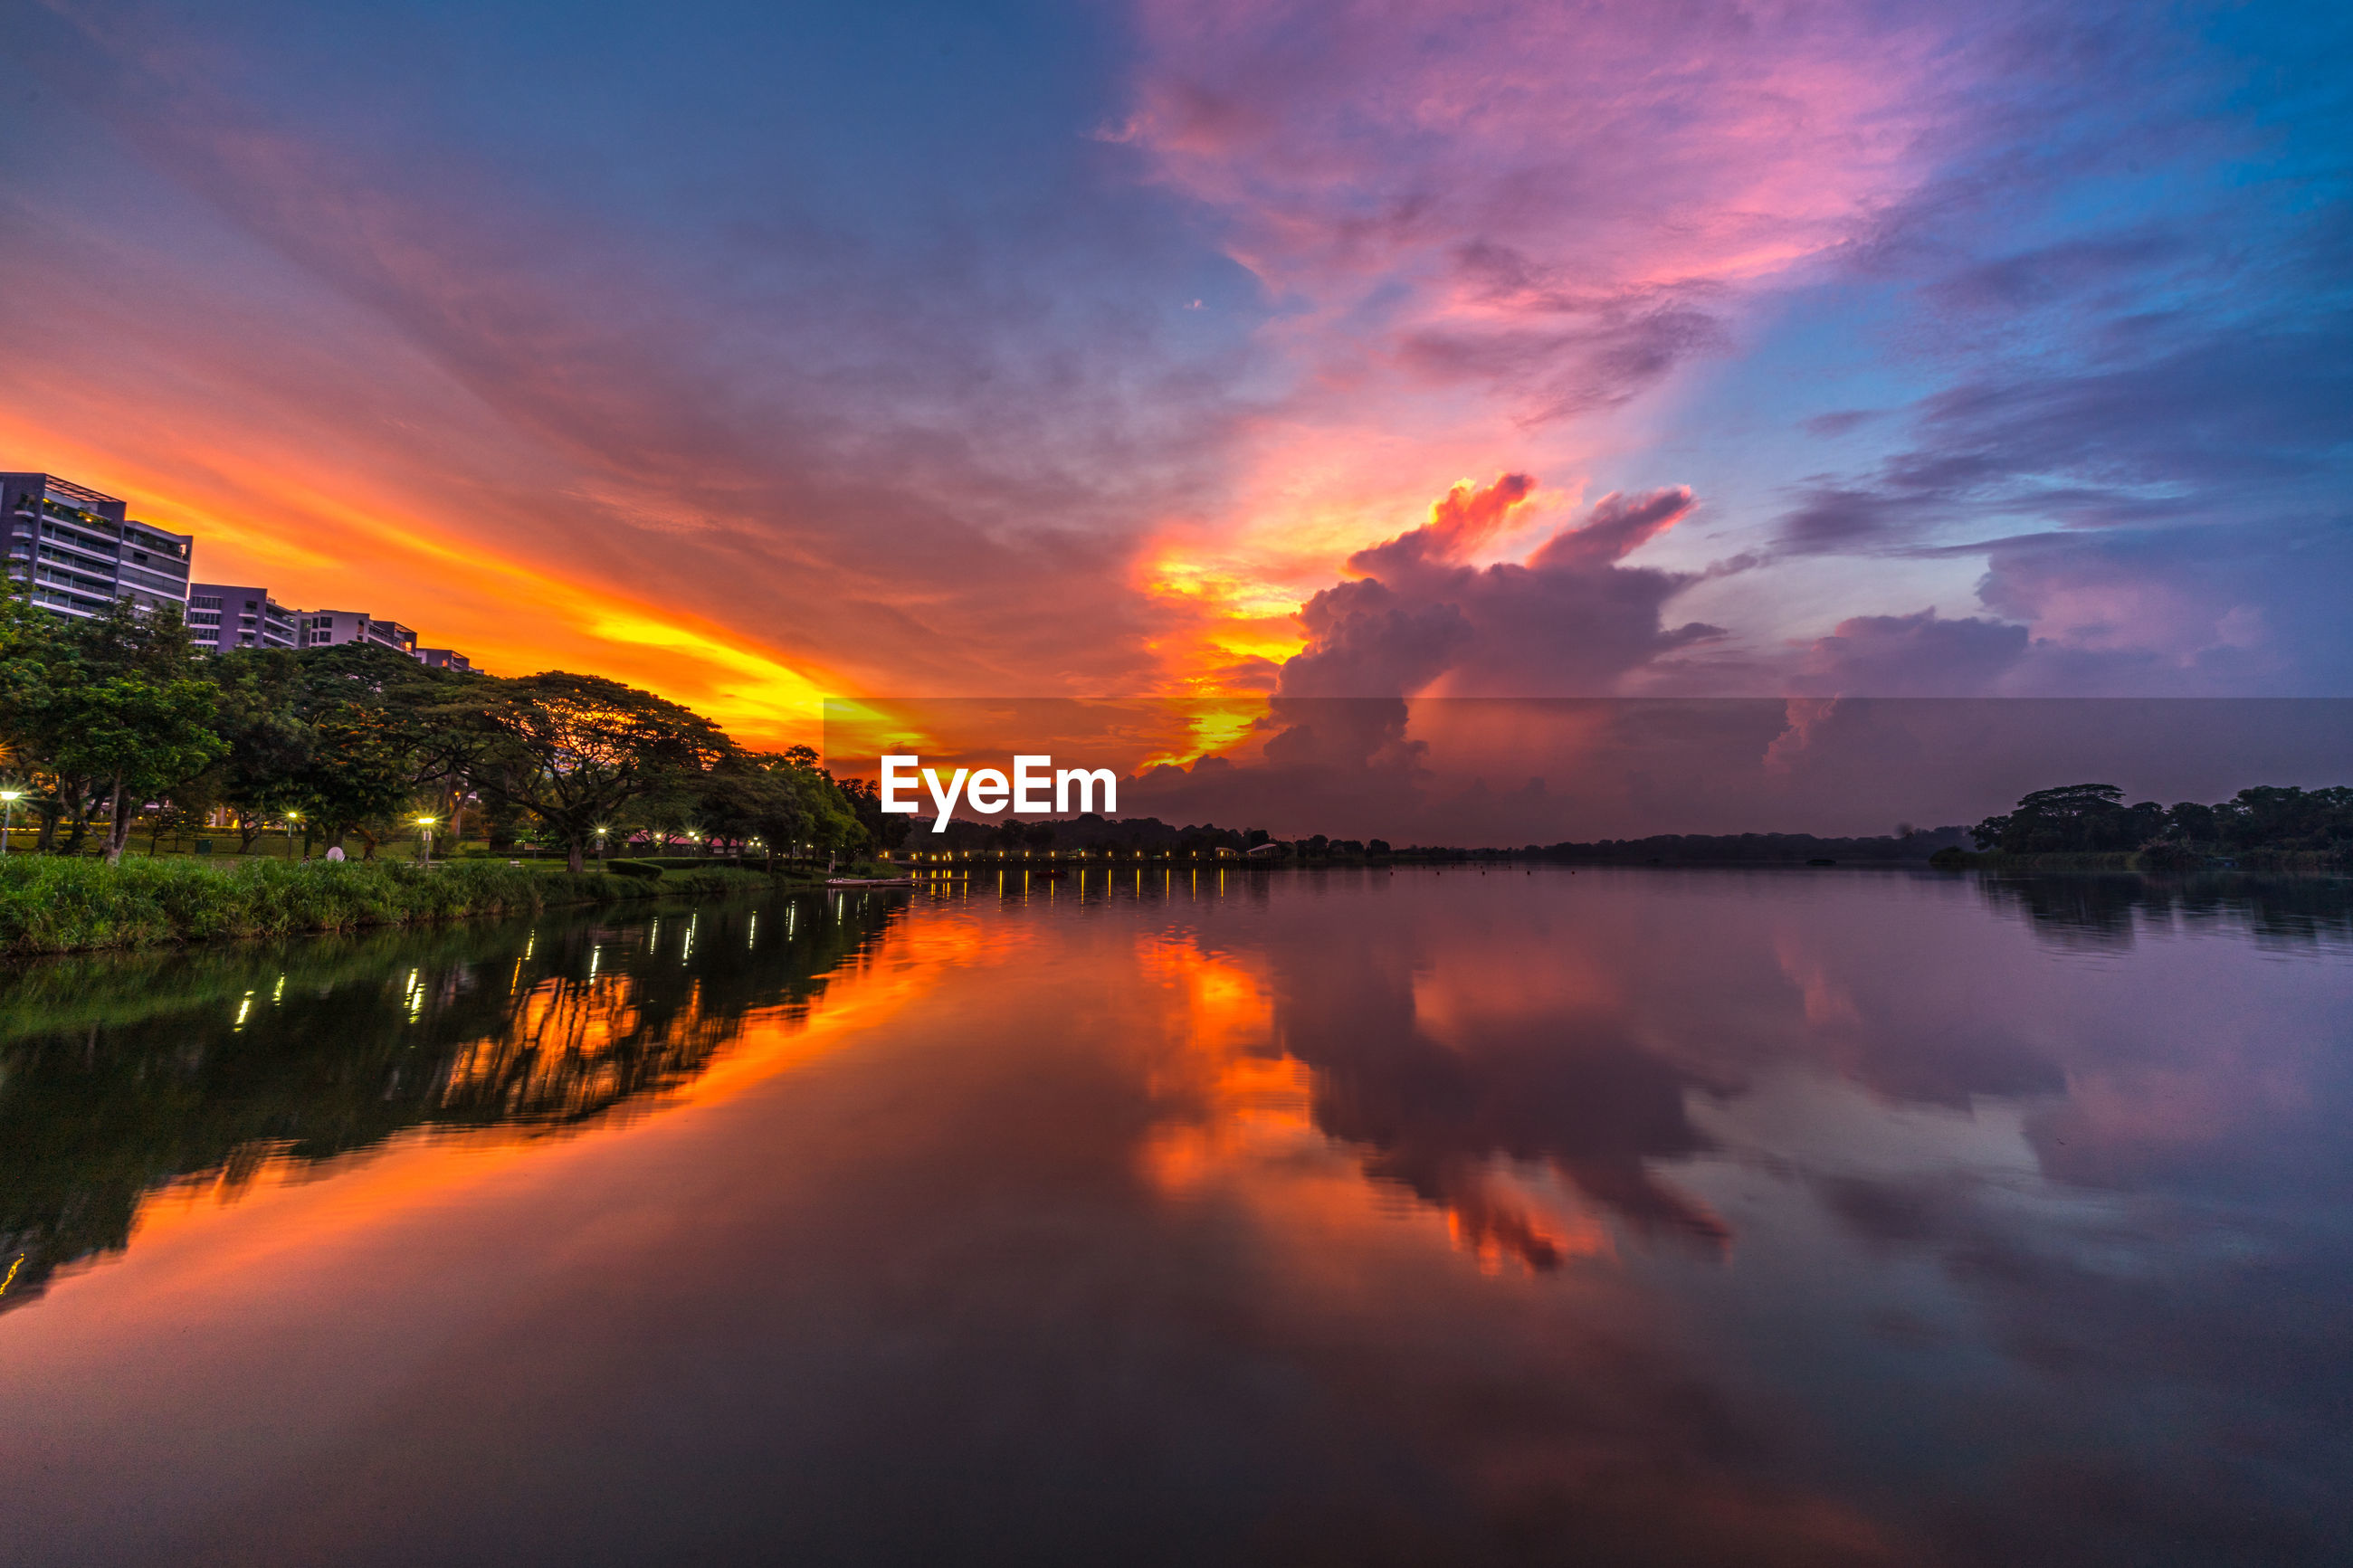 SCENIC VIEW OF LAKE AGAINST ORANGE SKY